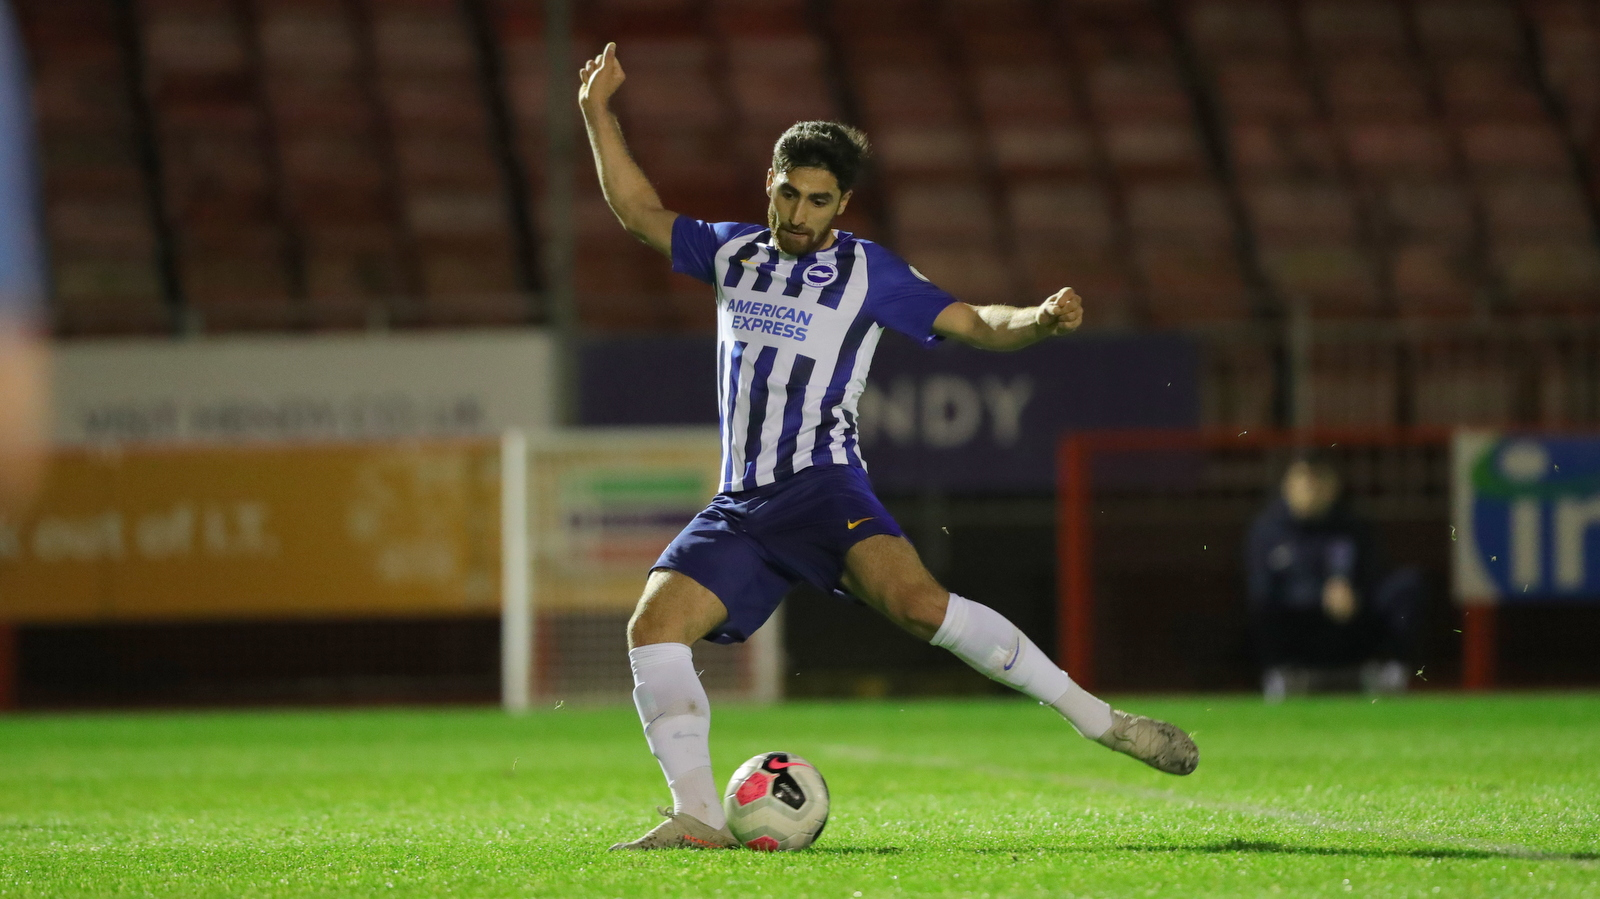 Albion winger Ali J has put the time in and now wants the rewards